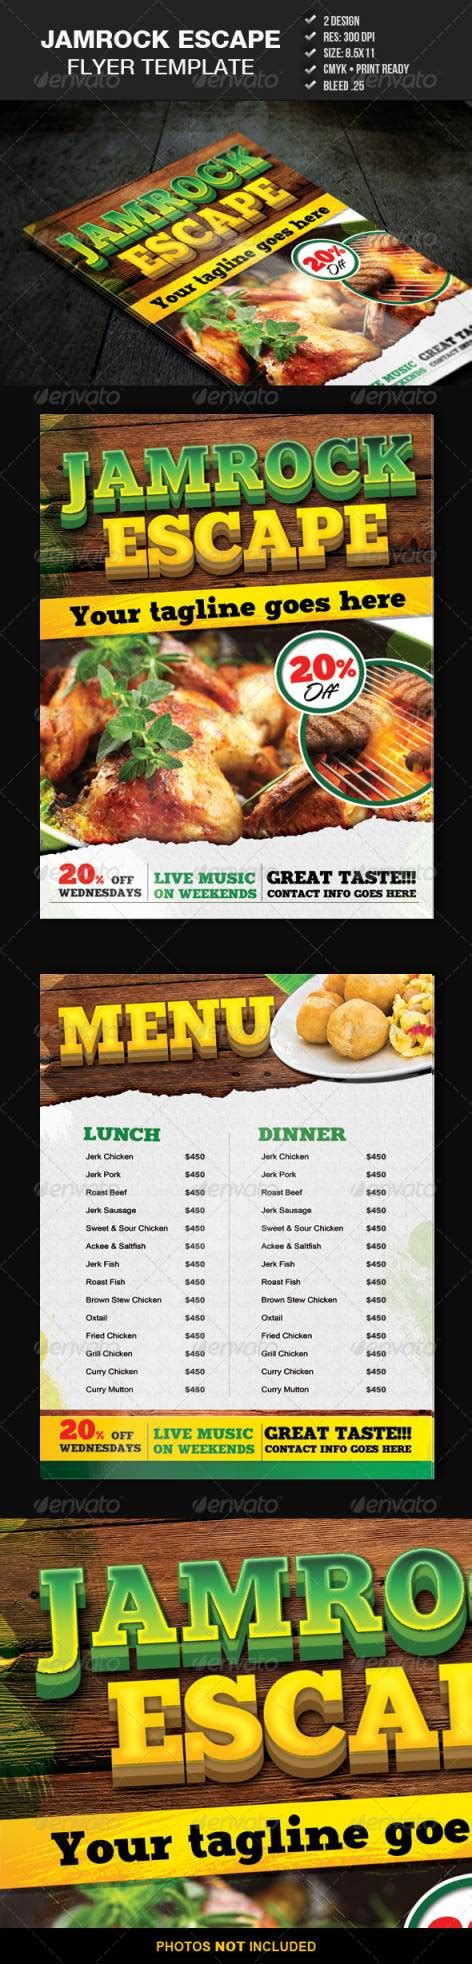 flyer design jamaica 45 best restaurant and food flyer templates